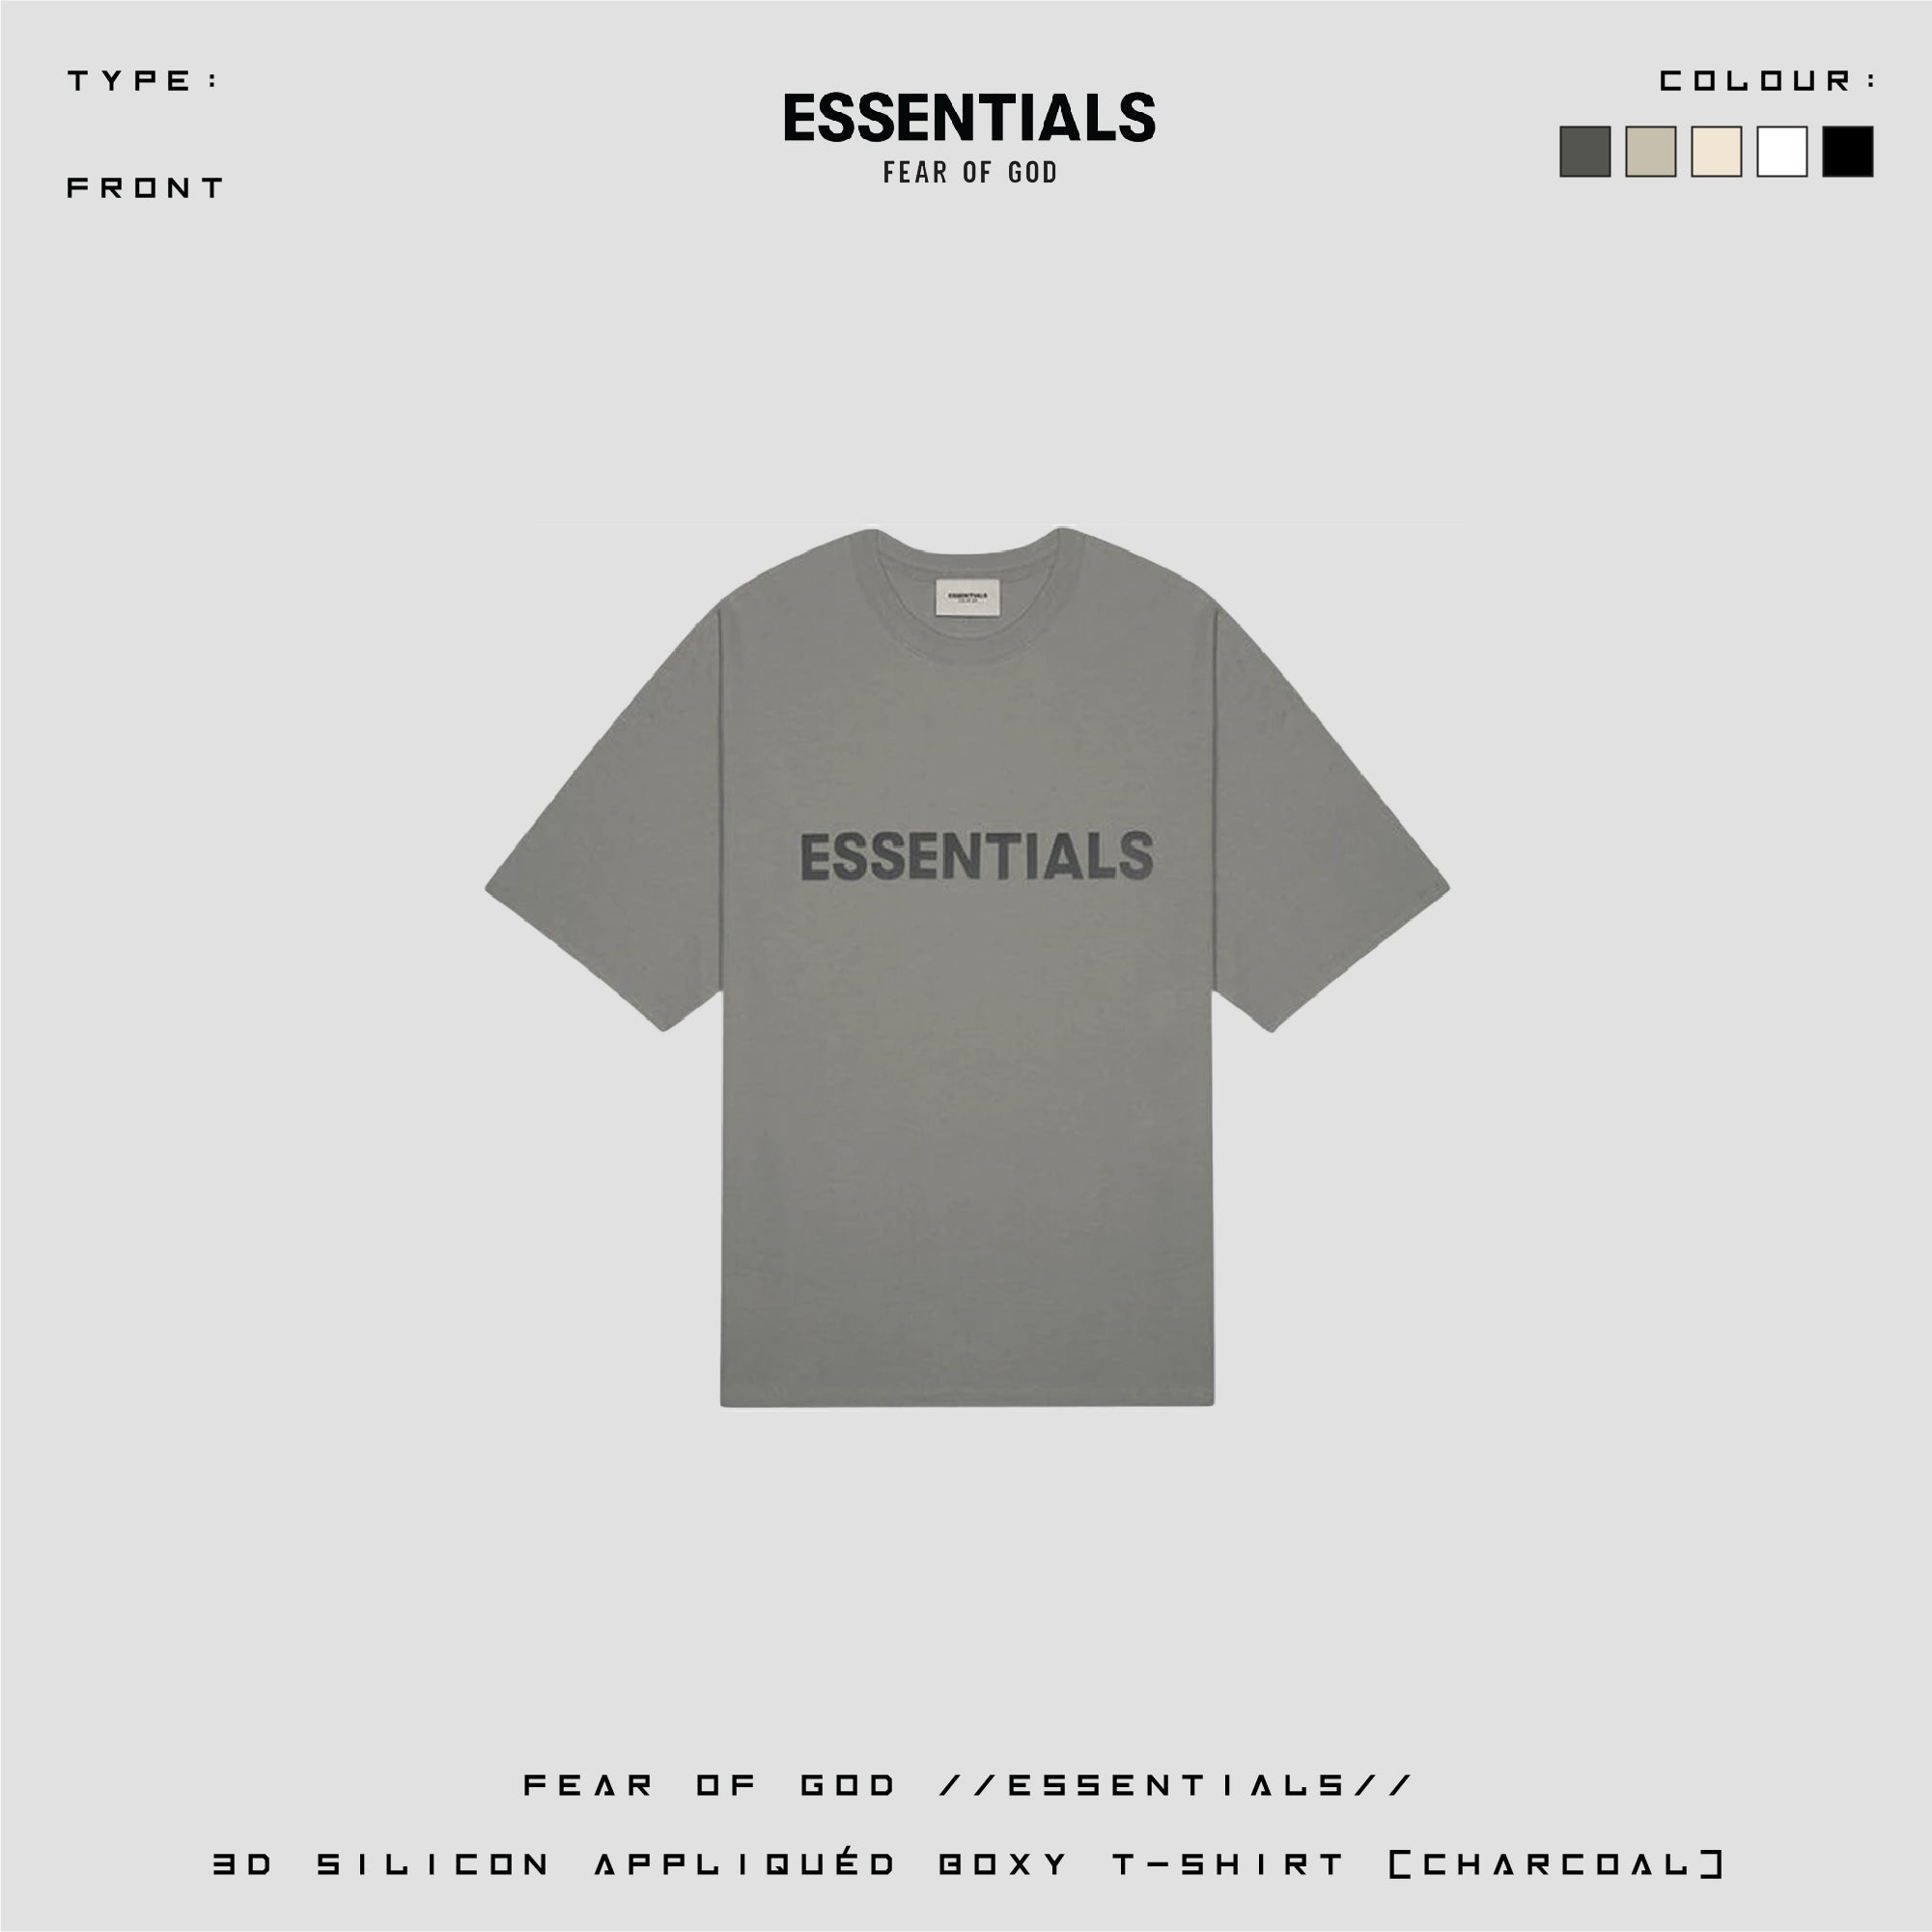 FOG ESSENTIAL 3D Silicon Applique Boxy Tee/ Charcoal